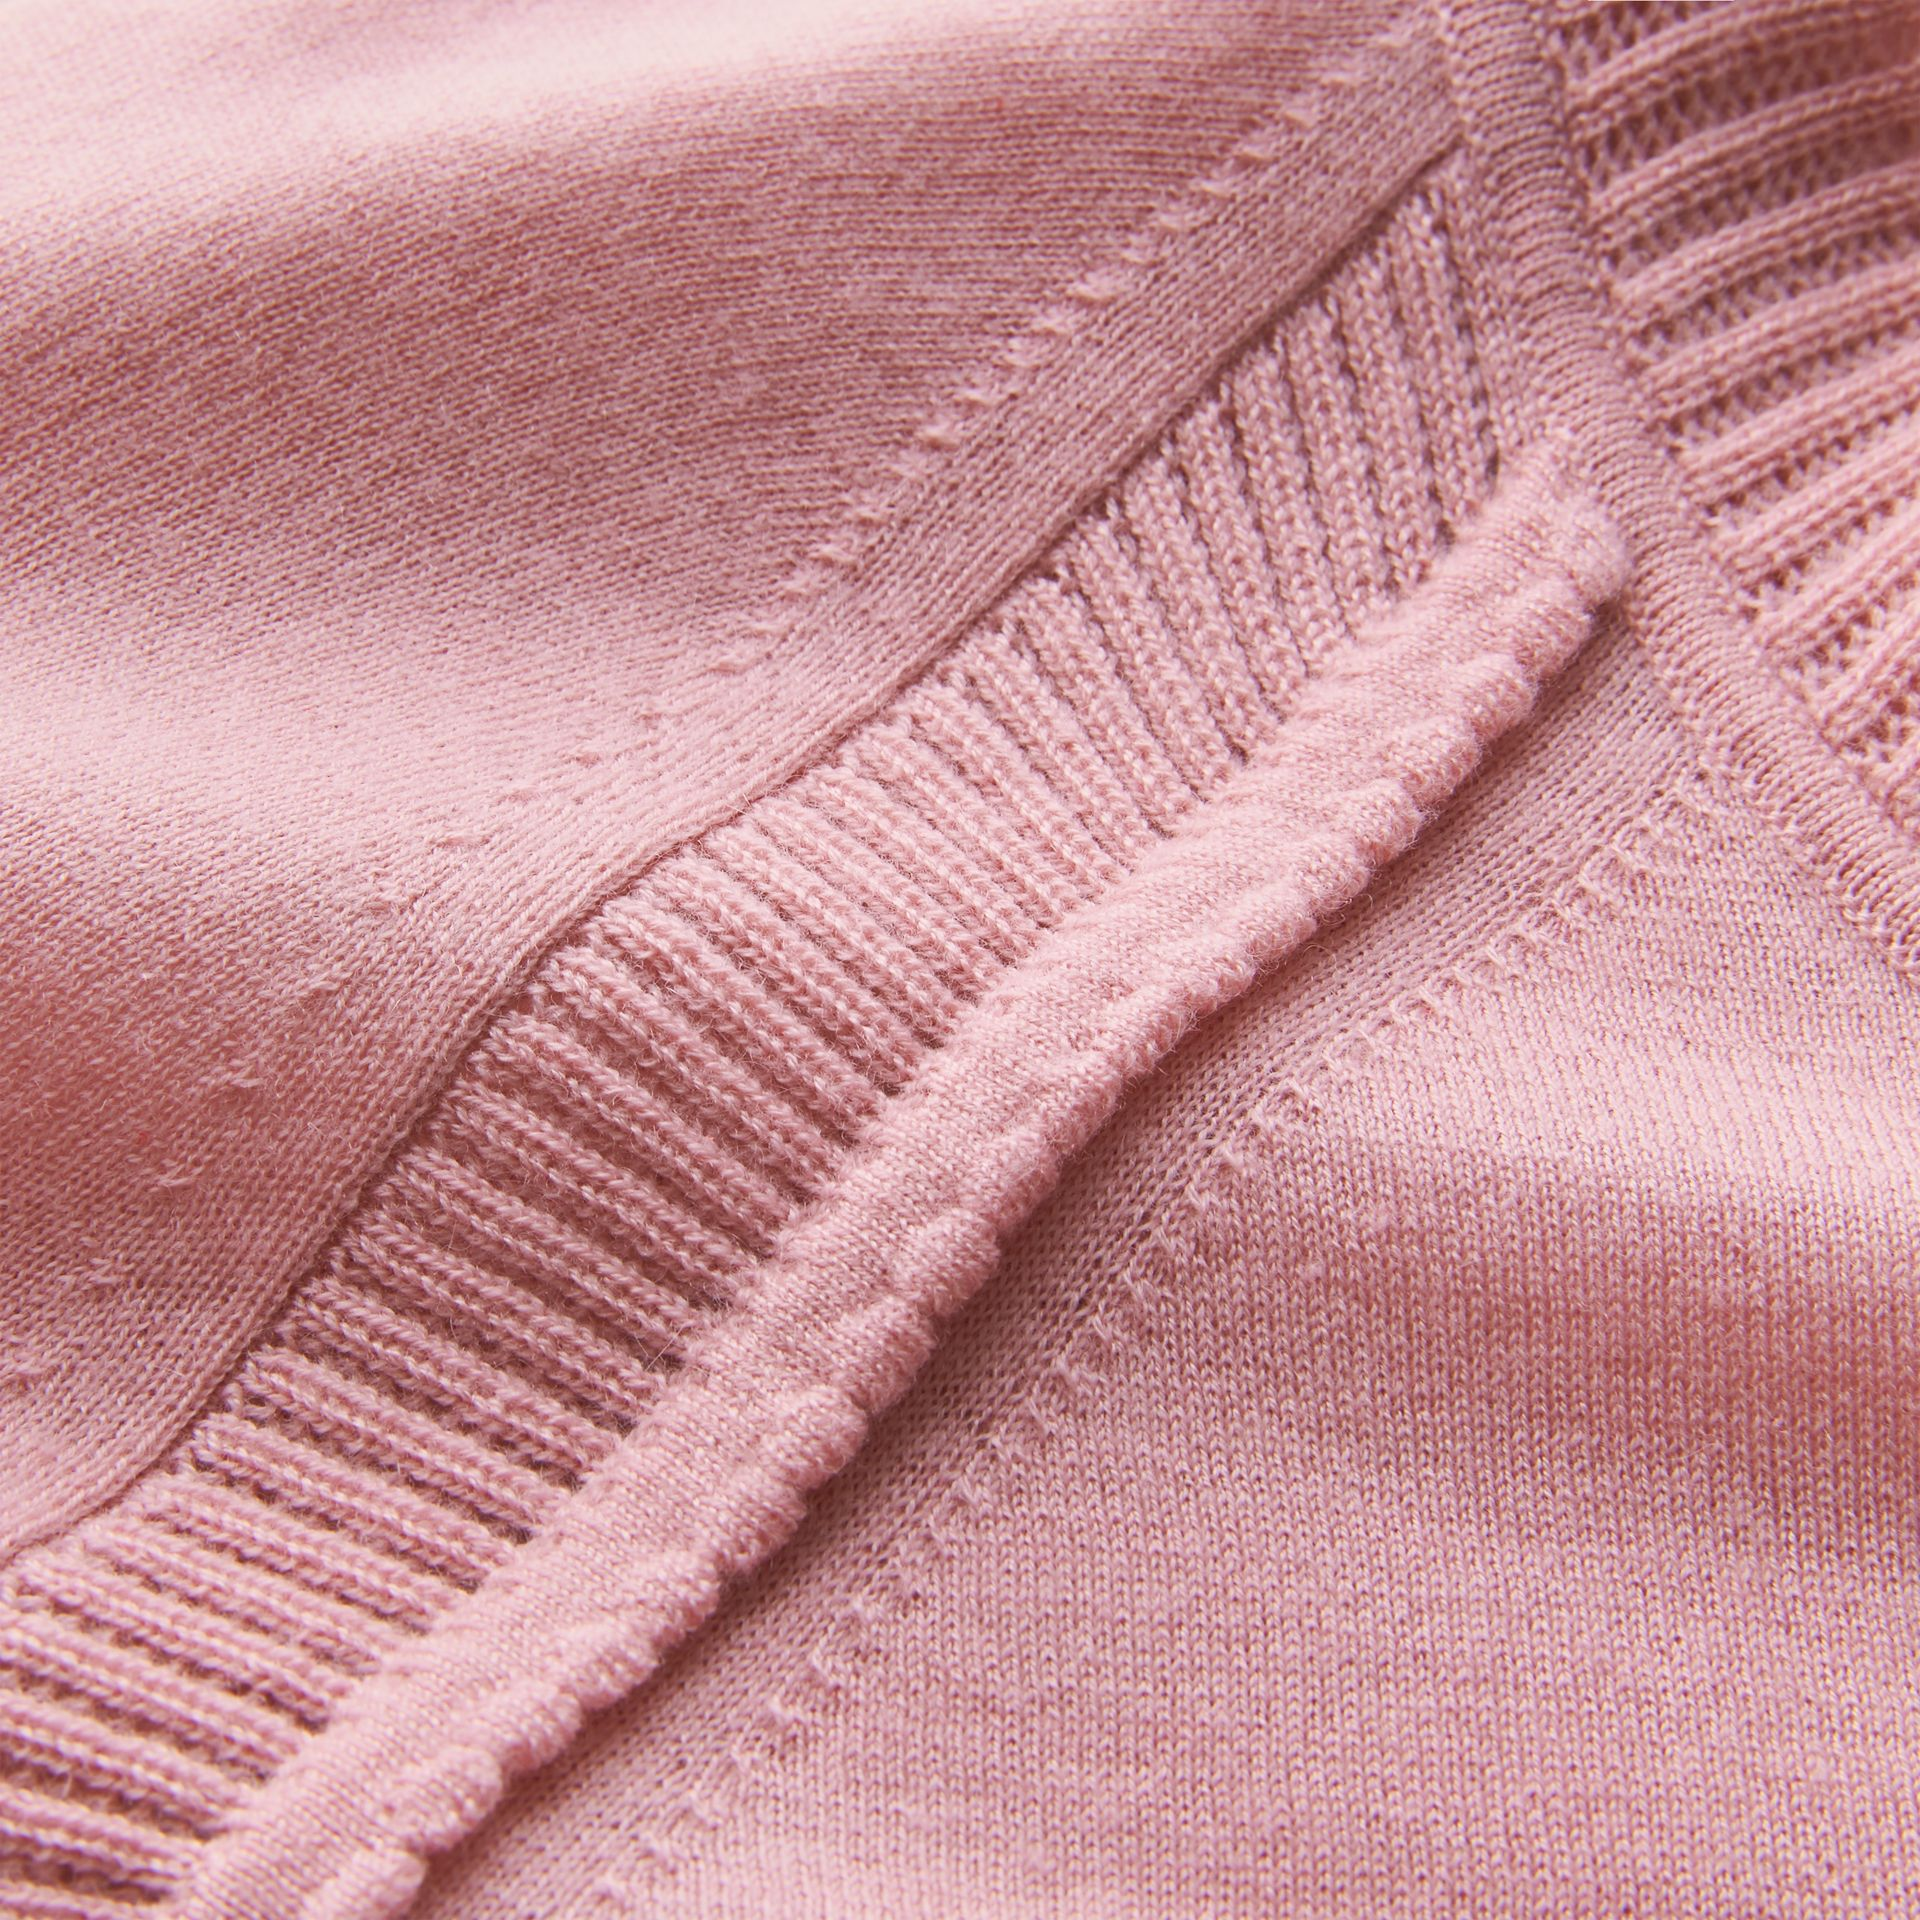 Open-knit Detail Cashmere Cardigan in Apricot Pink - Women | Burberry Australia - gallery image 2